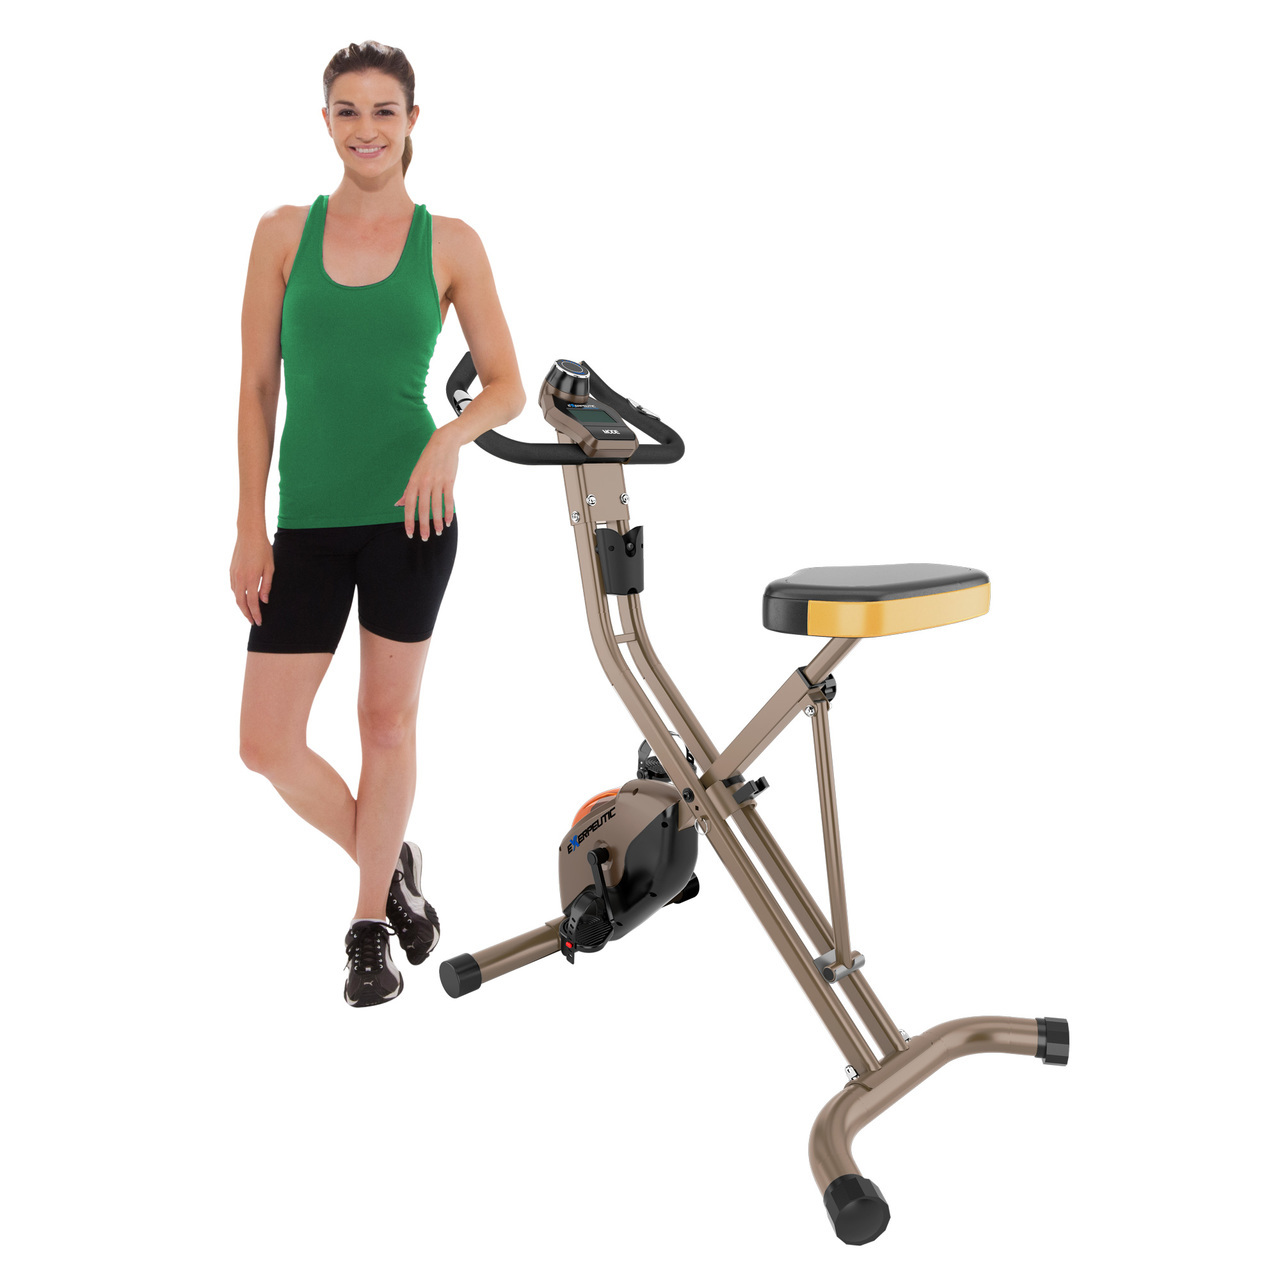 Best exercise bike for tall person that tracks your workout progress